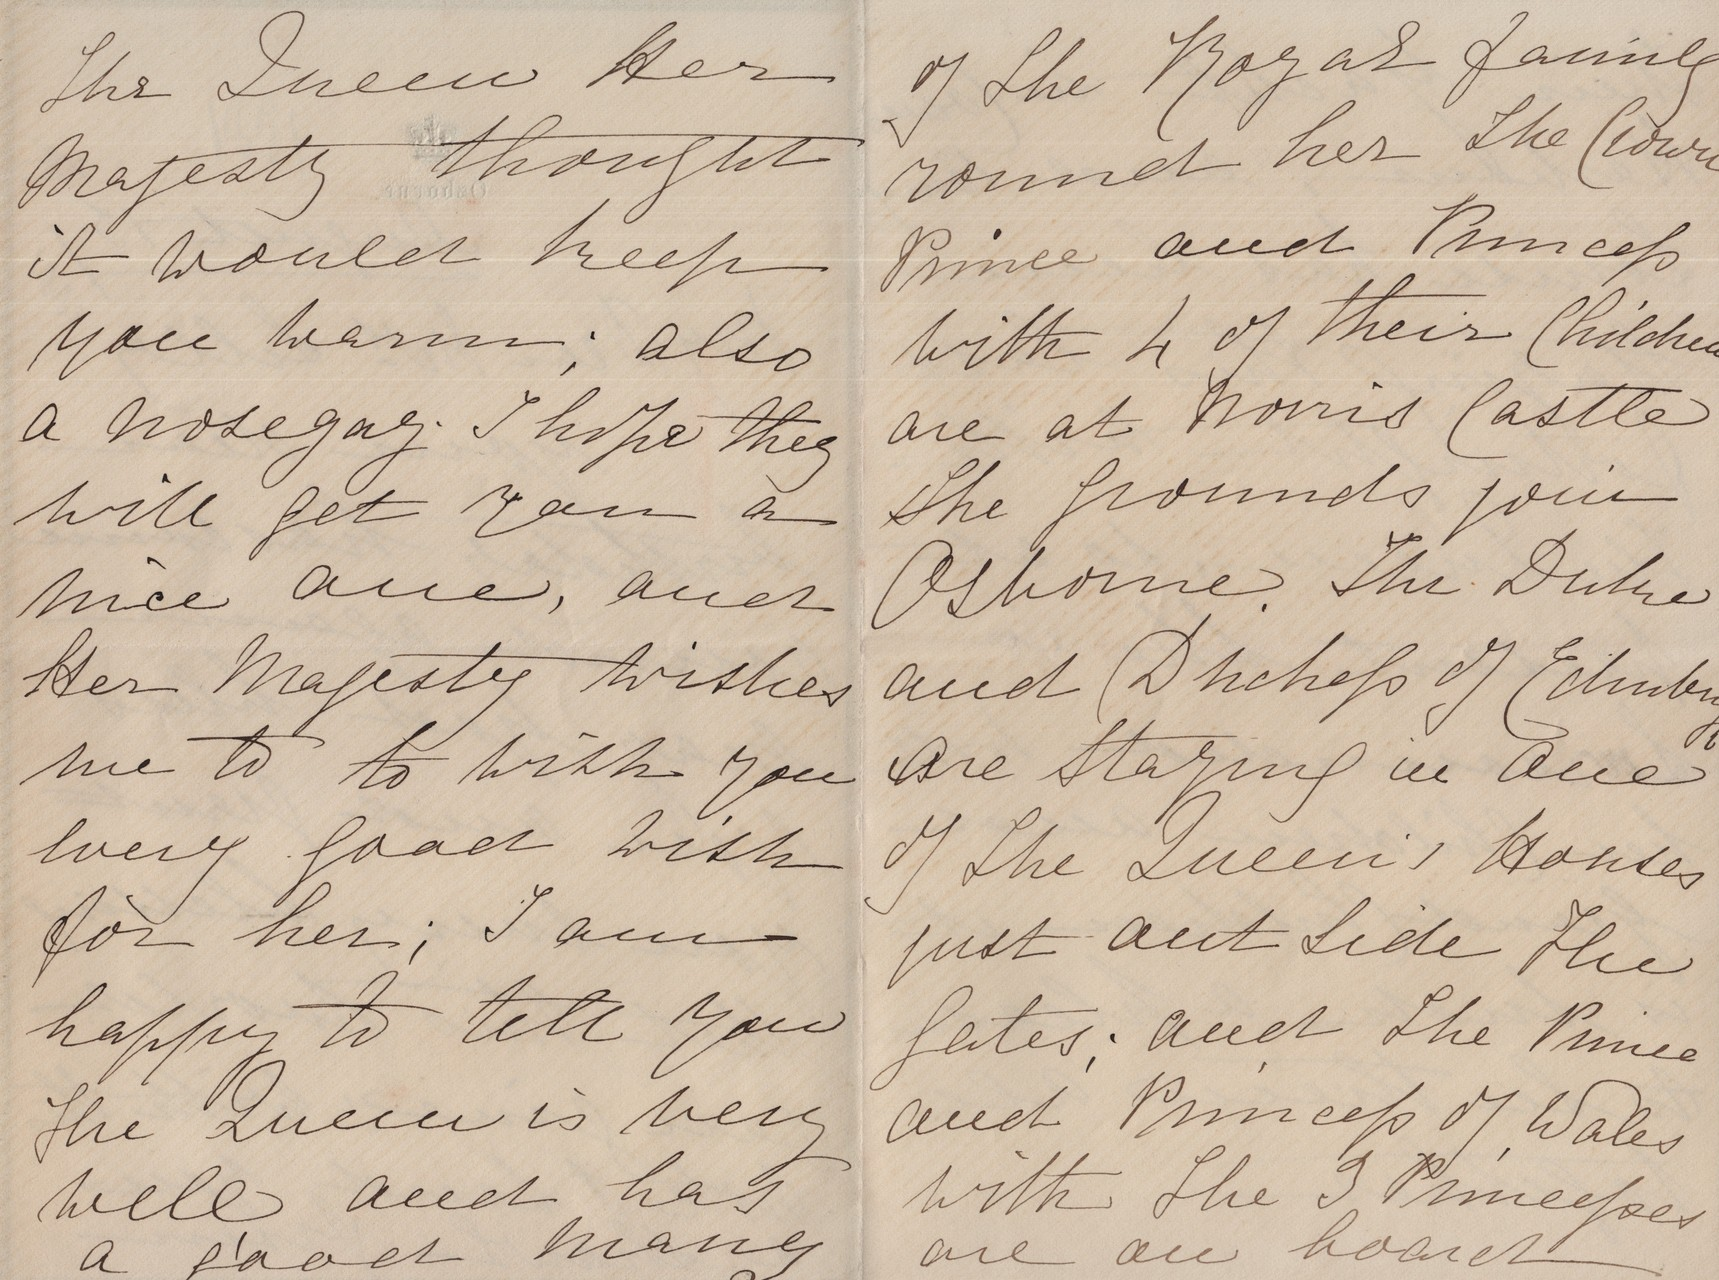 1881 August 13th Annie MacDonald to MDL